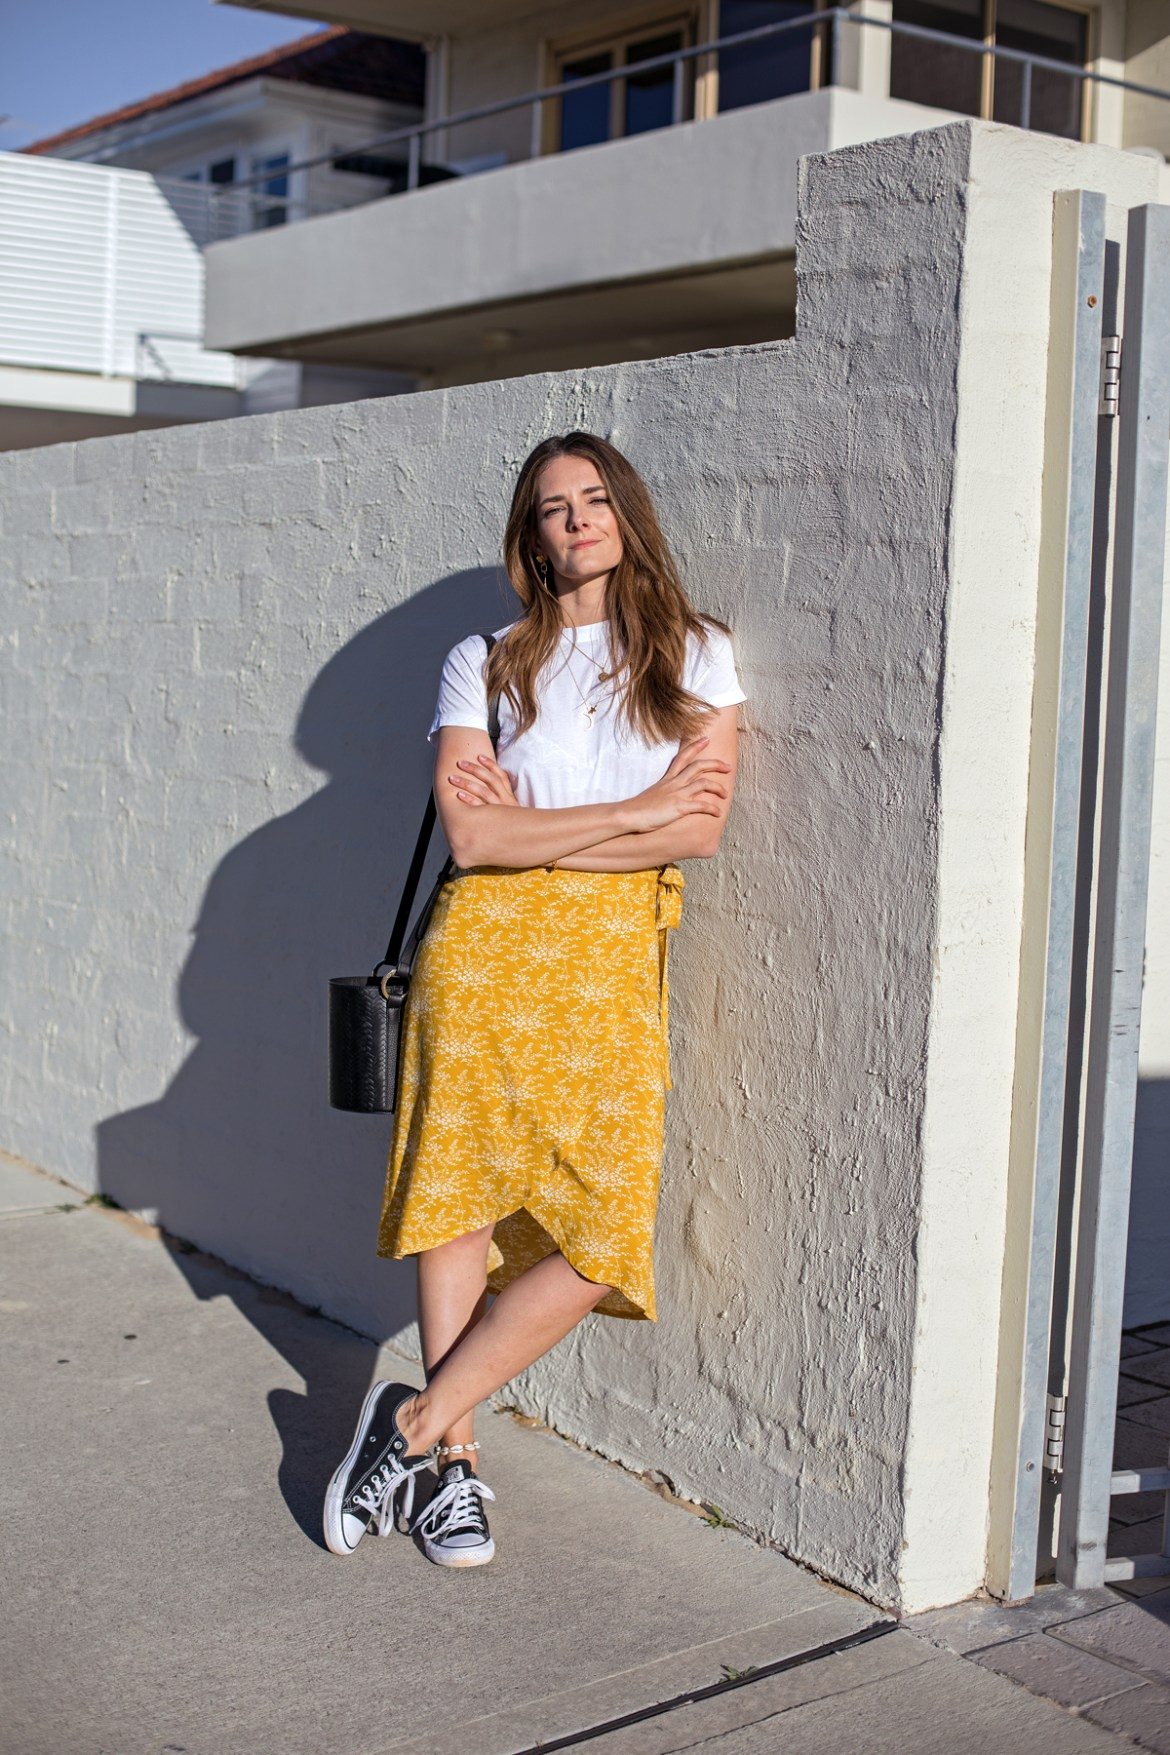 Bohemian Traders for spring 2018 mustard yellow wrap skirt worn by Jenelle Witty from Australian fashion blog Inspiring Wit